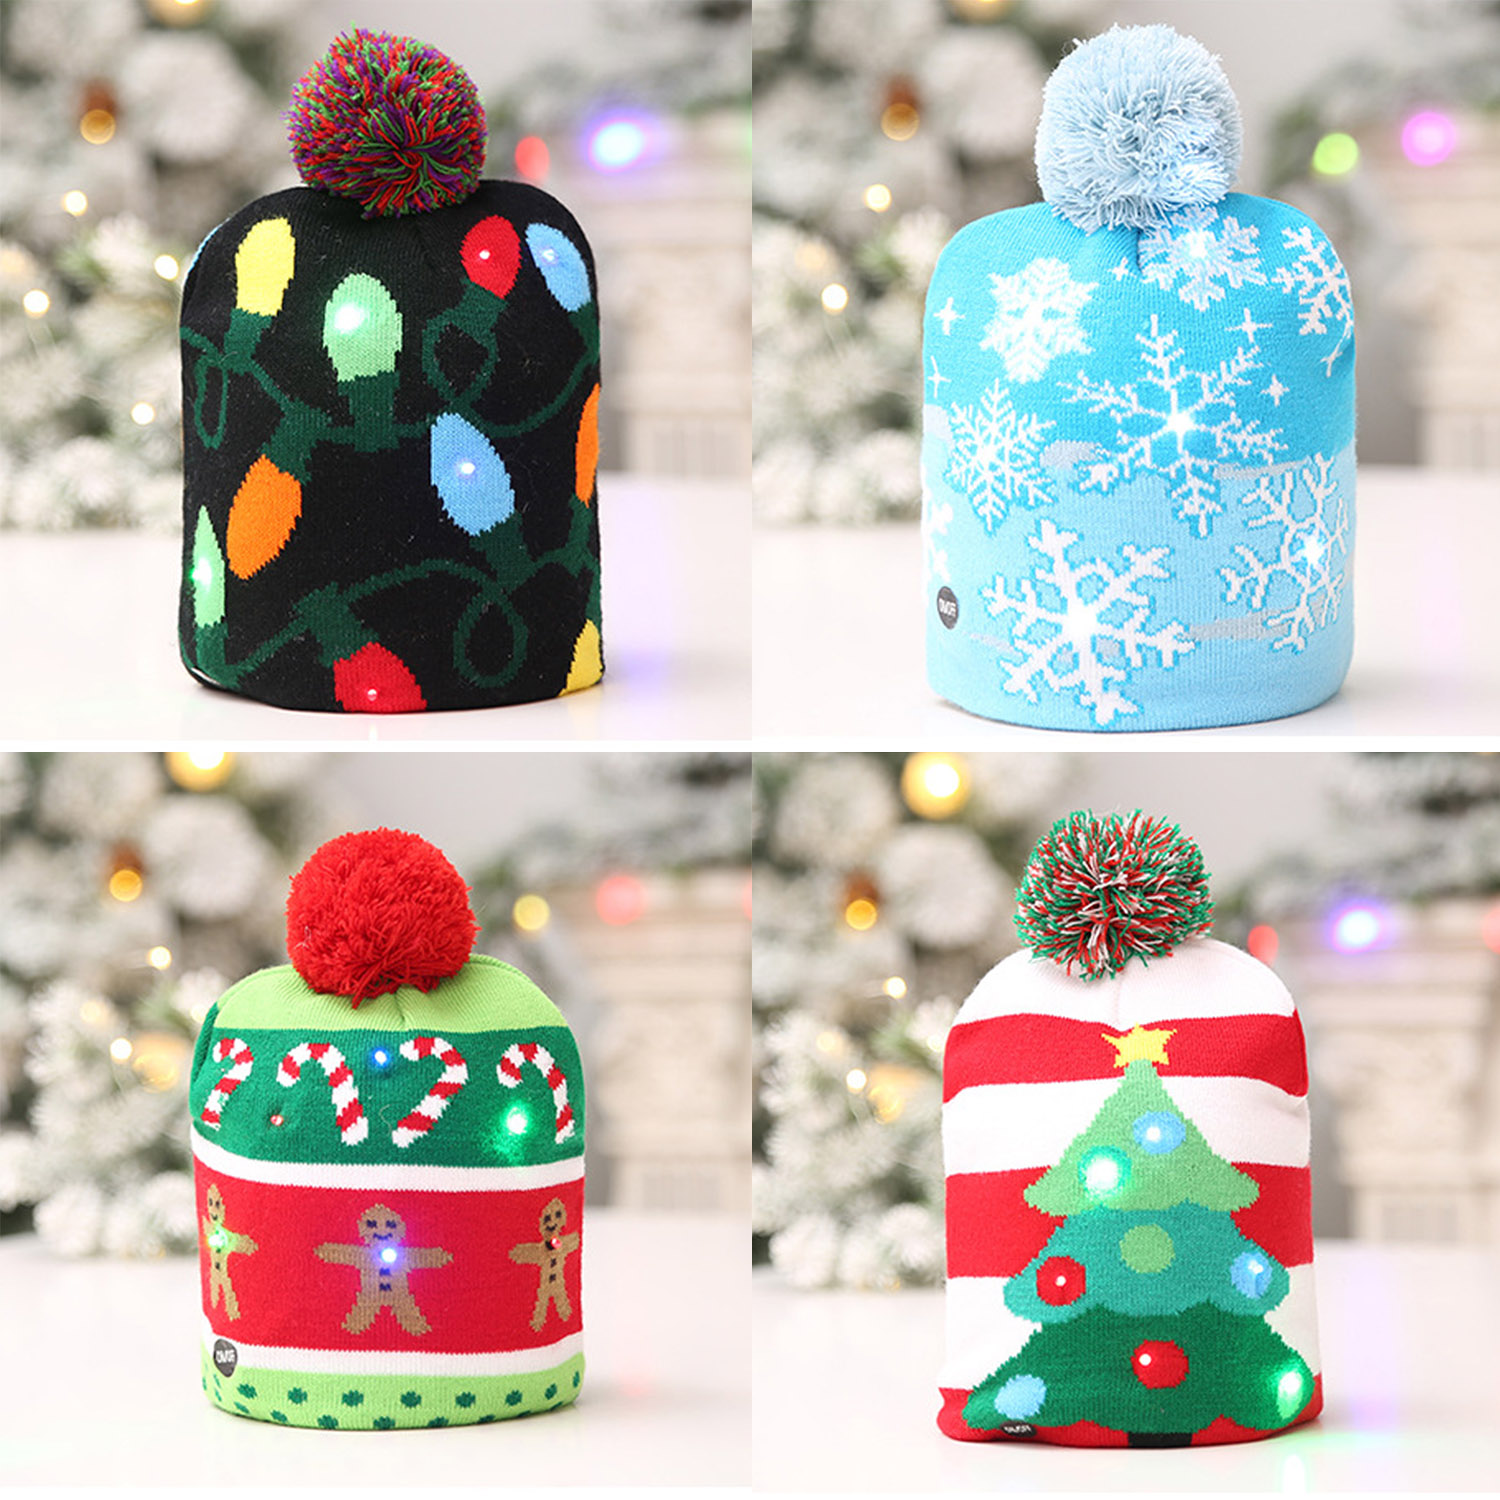 Unisex Fashion Warm LED Christmas Winter Knitted Knitting Hat For Adults Kids Party Carnival Celebration